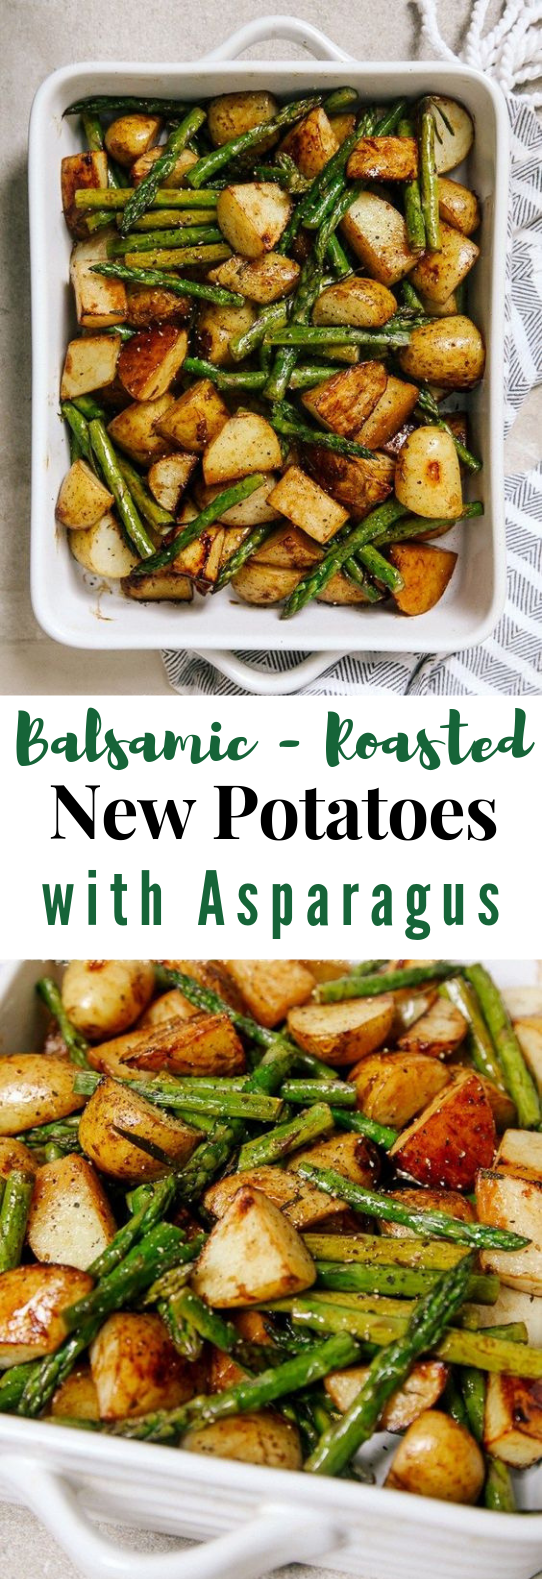 BALSAMIC ROASTED NEW POTATOES WITH ASPARAGUS #Vegetarian #Asparagus